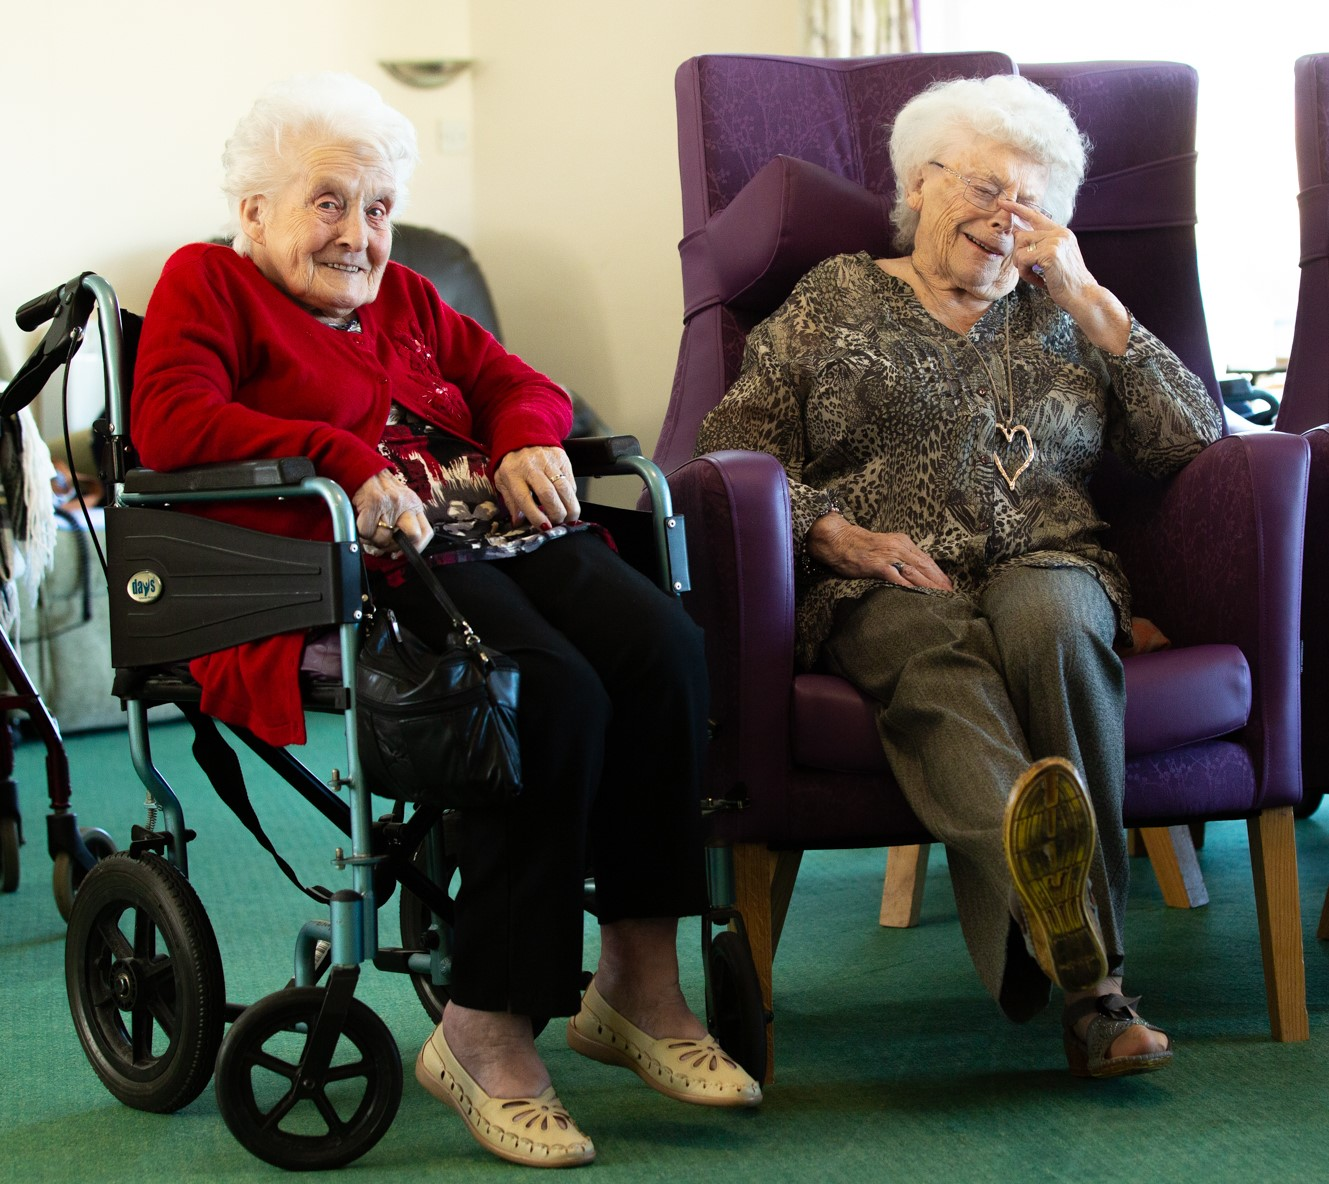 Get started in social care - ladies laughing